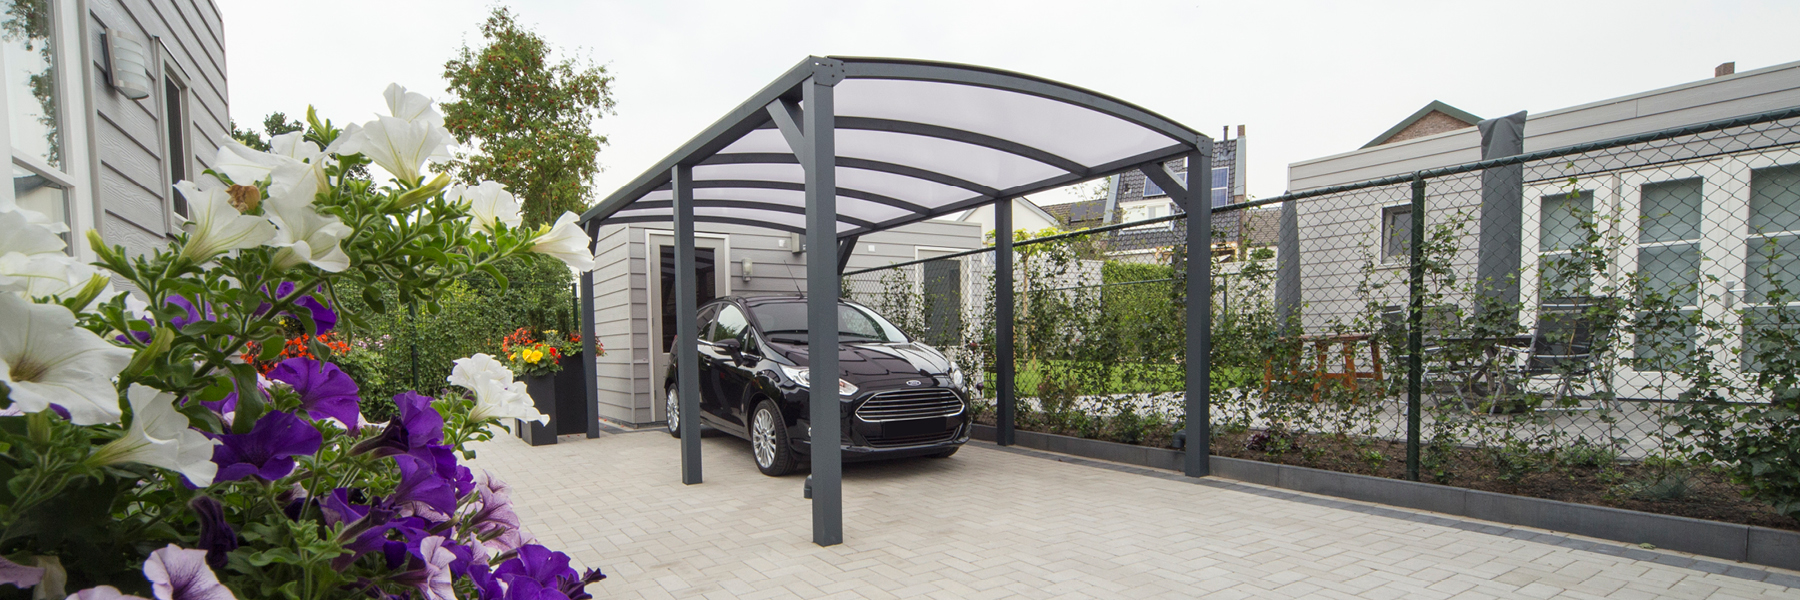 tdm-sliders-carports